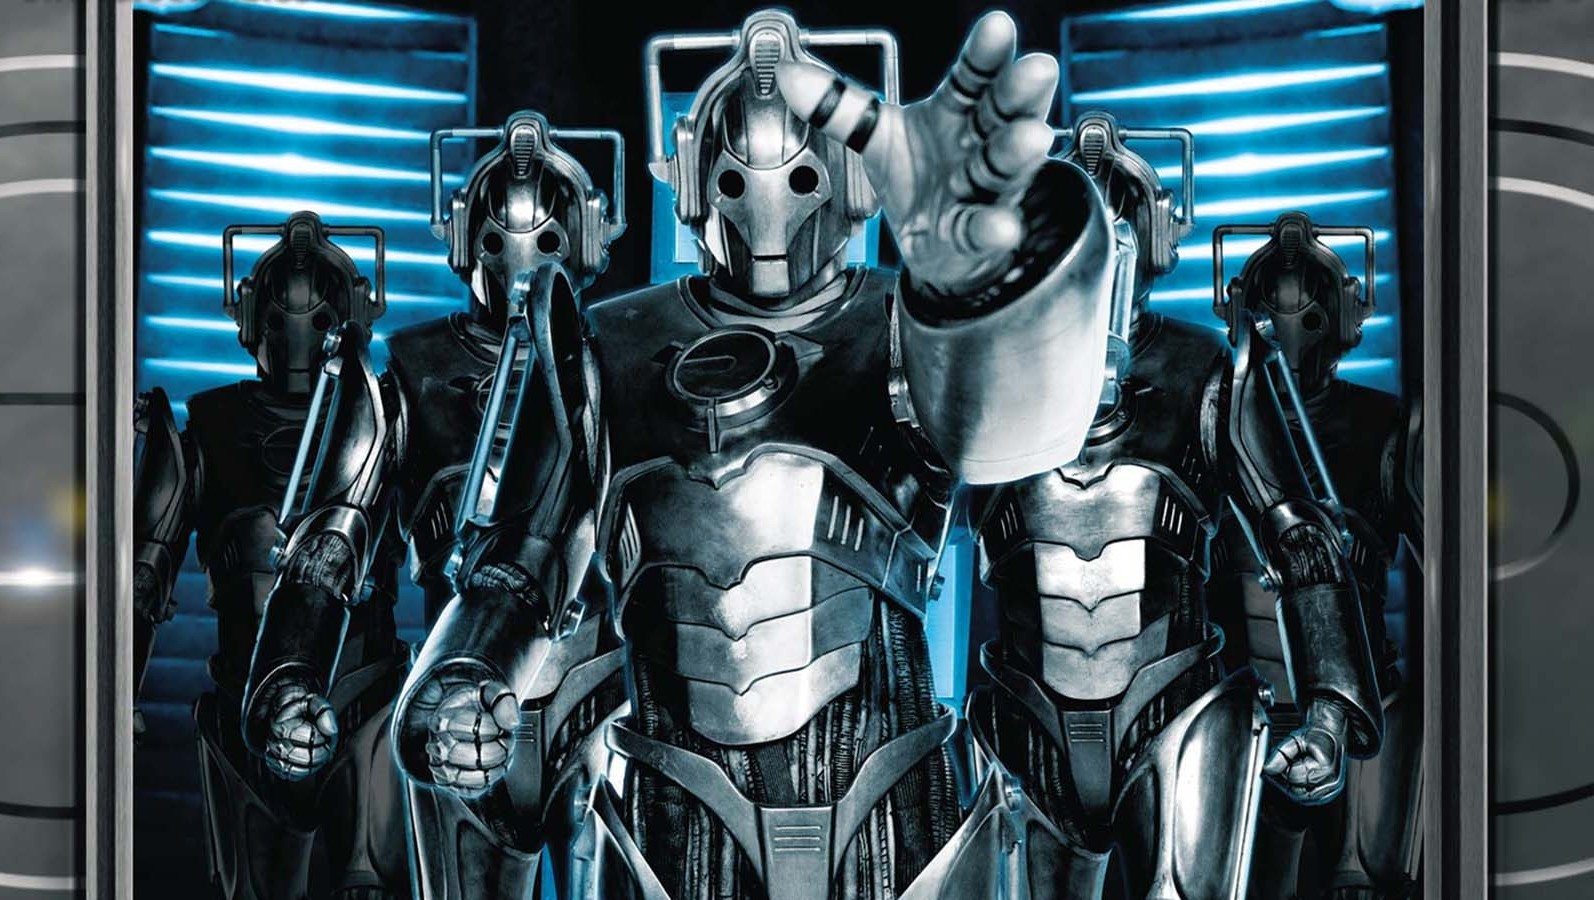 Doctor Who 3d Wallpaper Doctor Who Cyberman Wallpapers Hd Desktop And Mobile